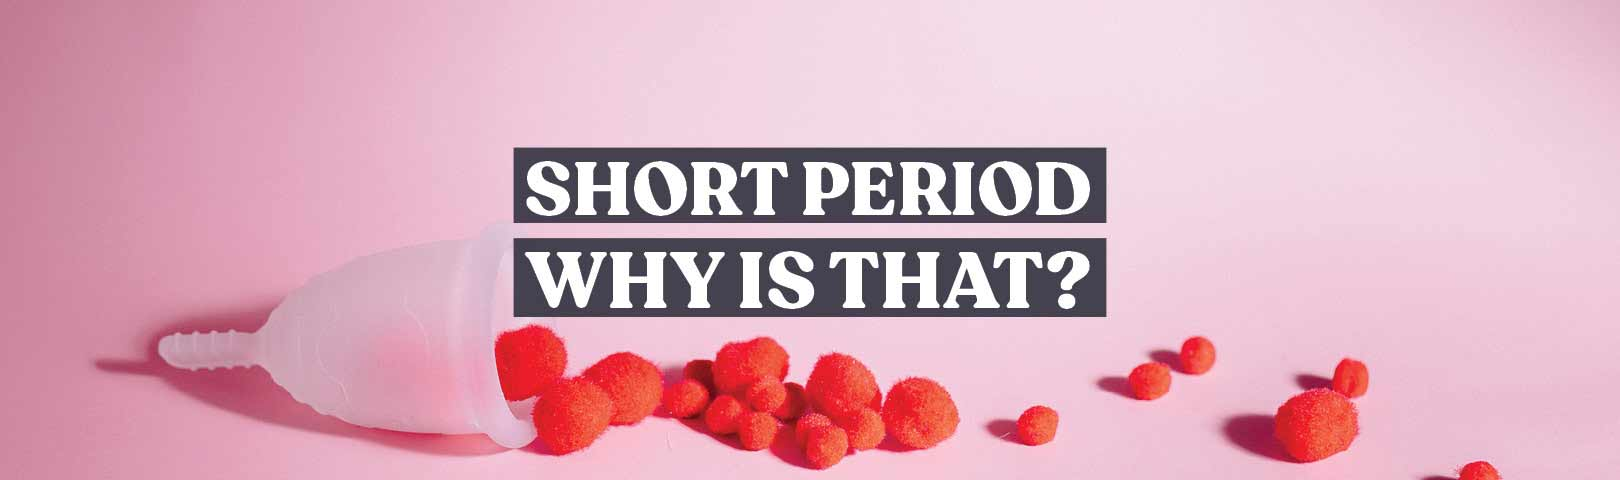 why is my period shorter than normal